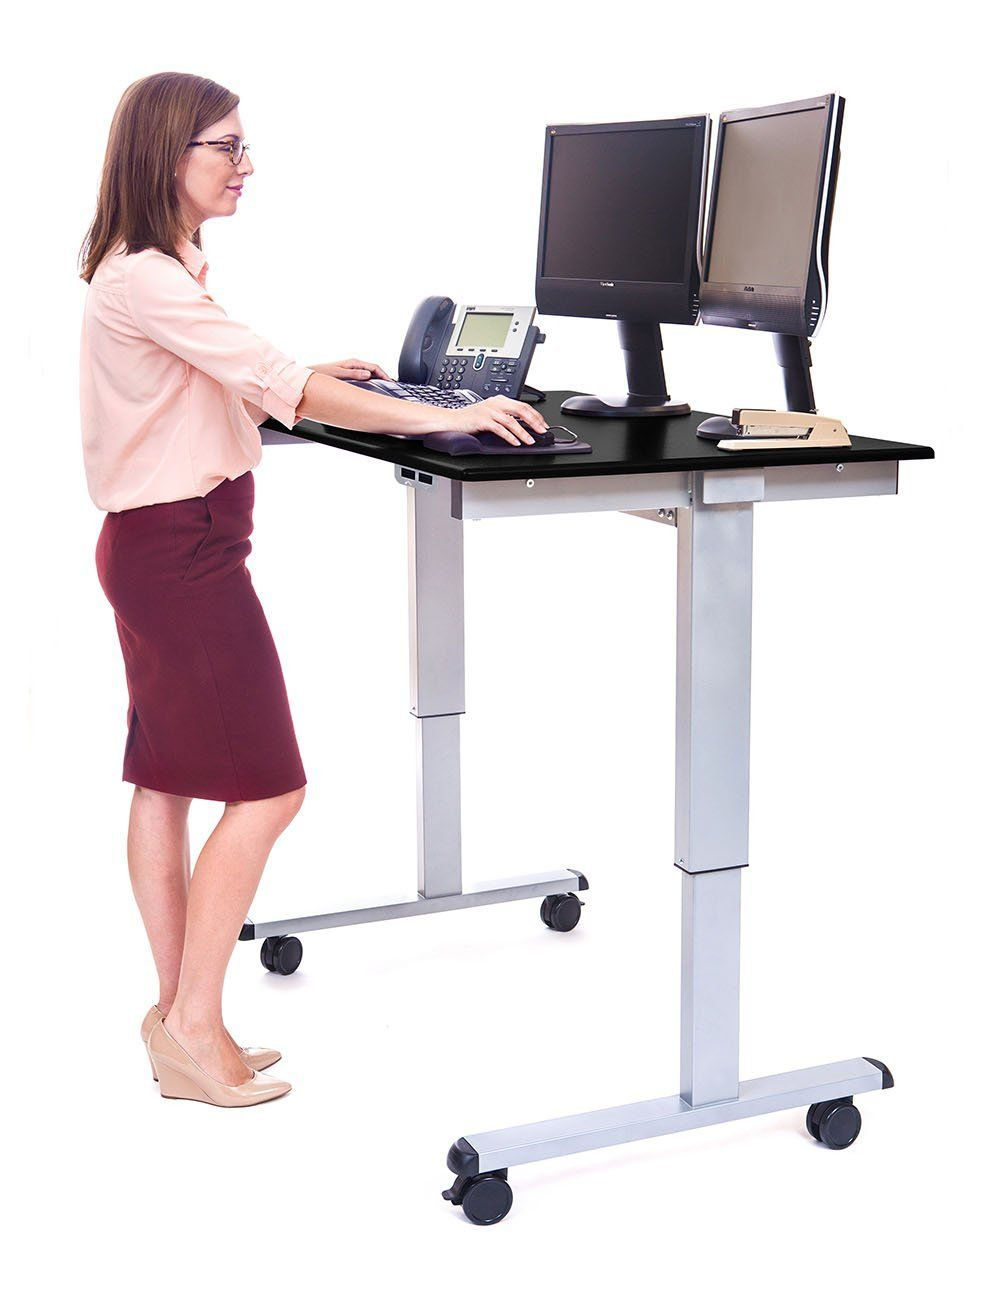 Our Article Provides Details About The Standing Desks That Come With Lockable Caster W Adjustable Height Standing Desk Adjustable Standing Desk Adjustable Desk